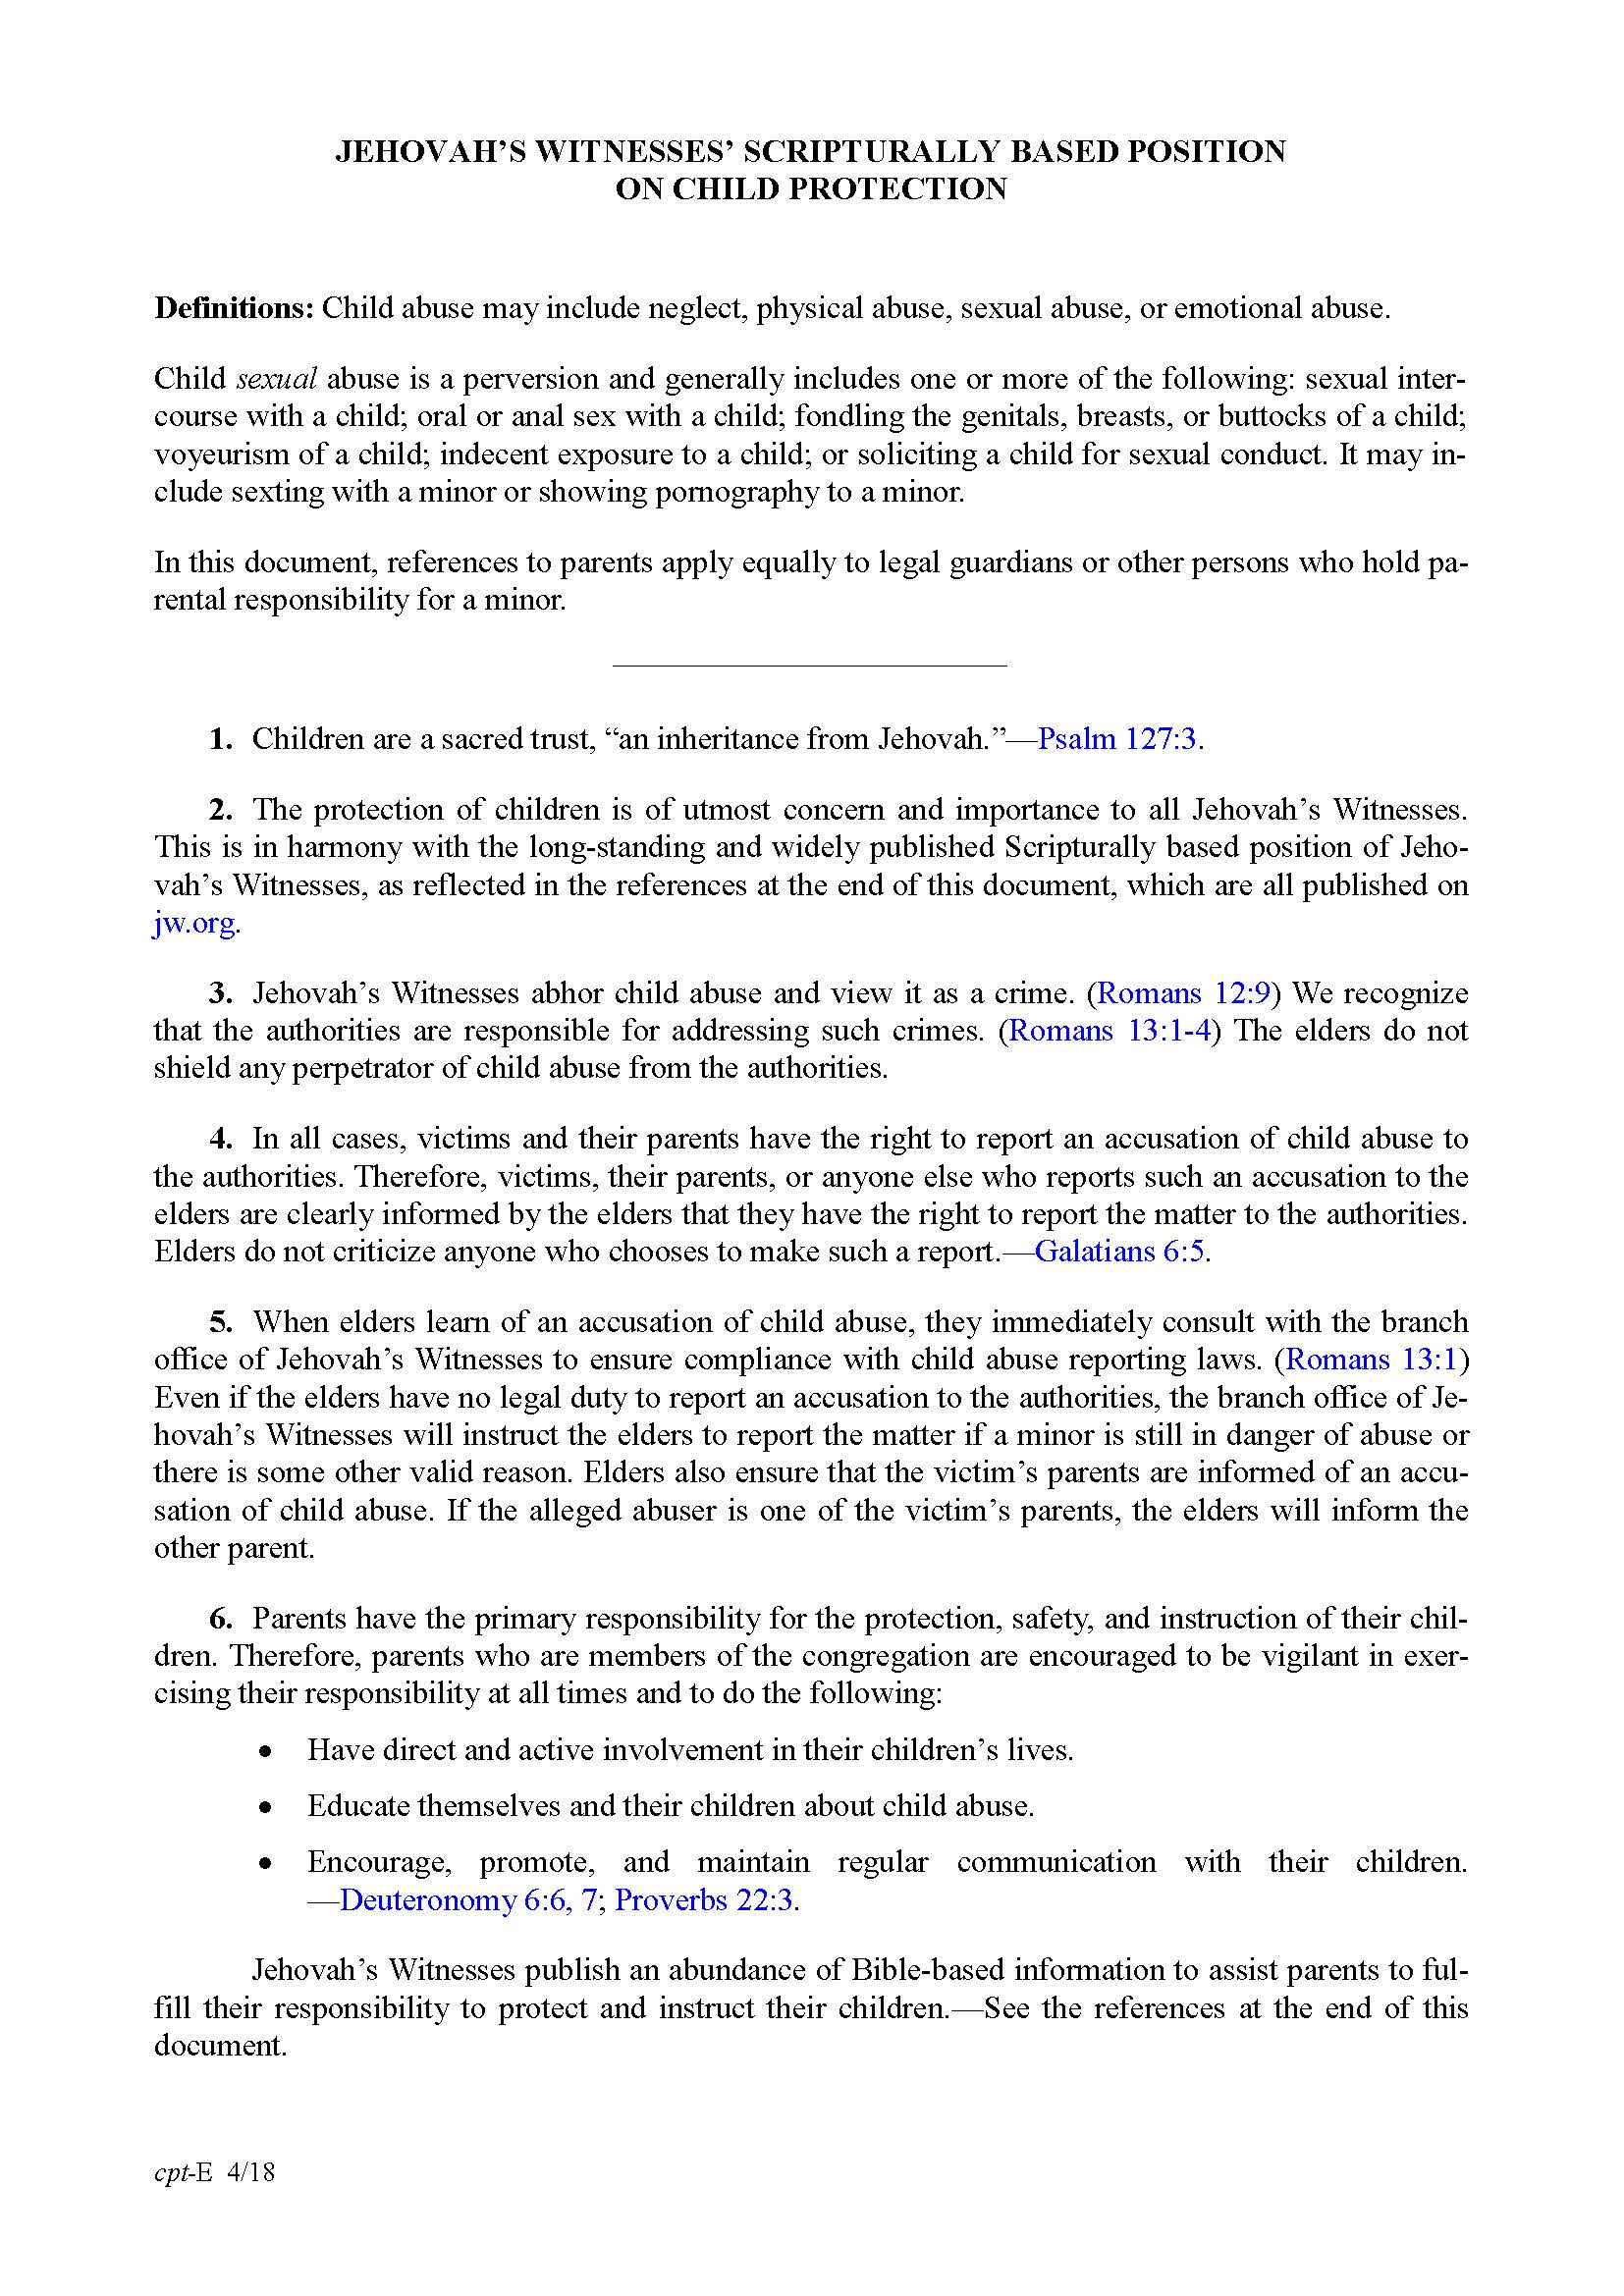 Jehovah's Witnesses' Scripturally Based Position on Child Protection, page 1